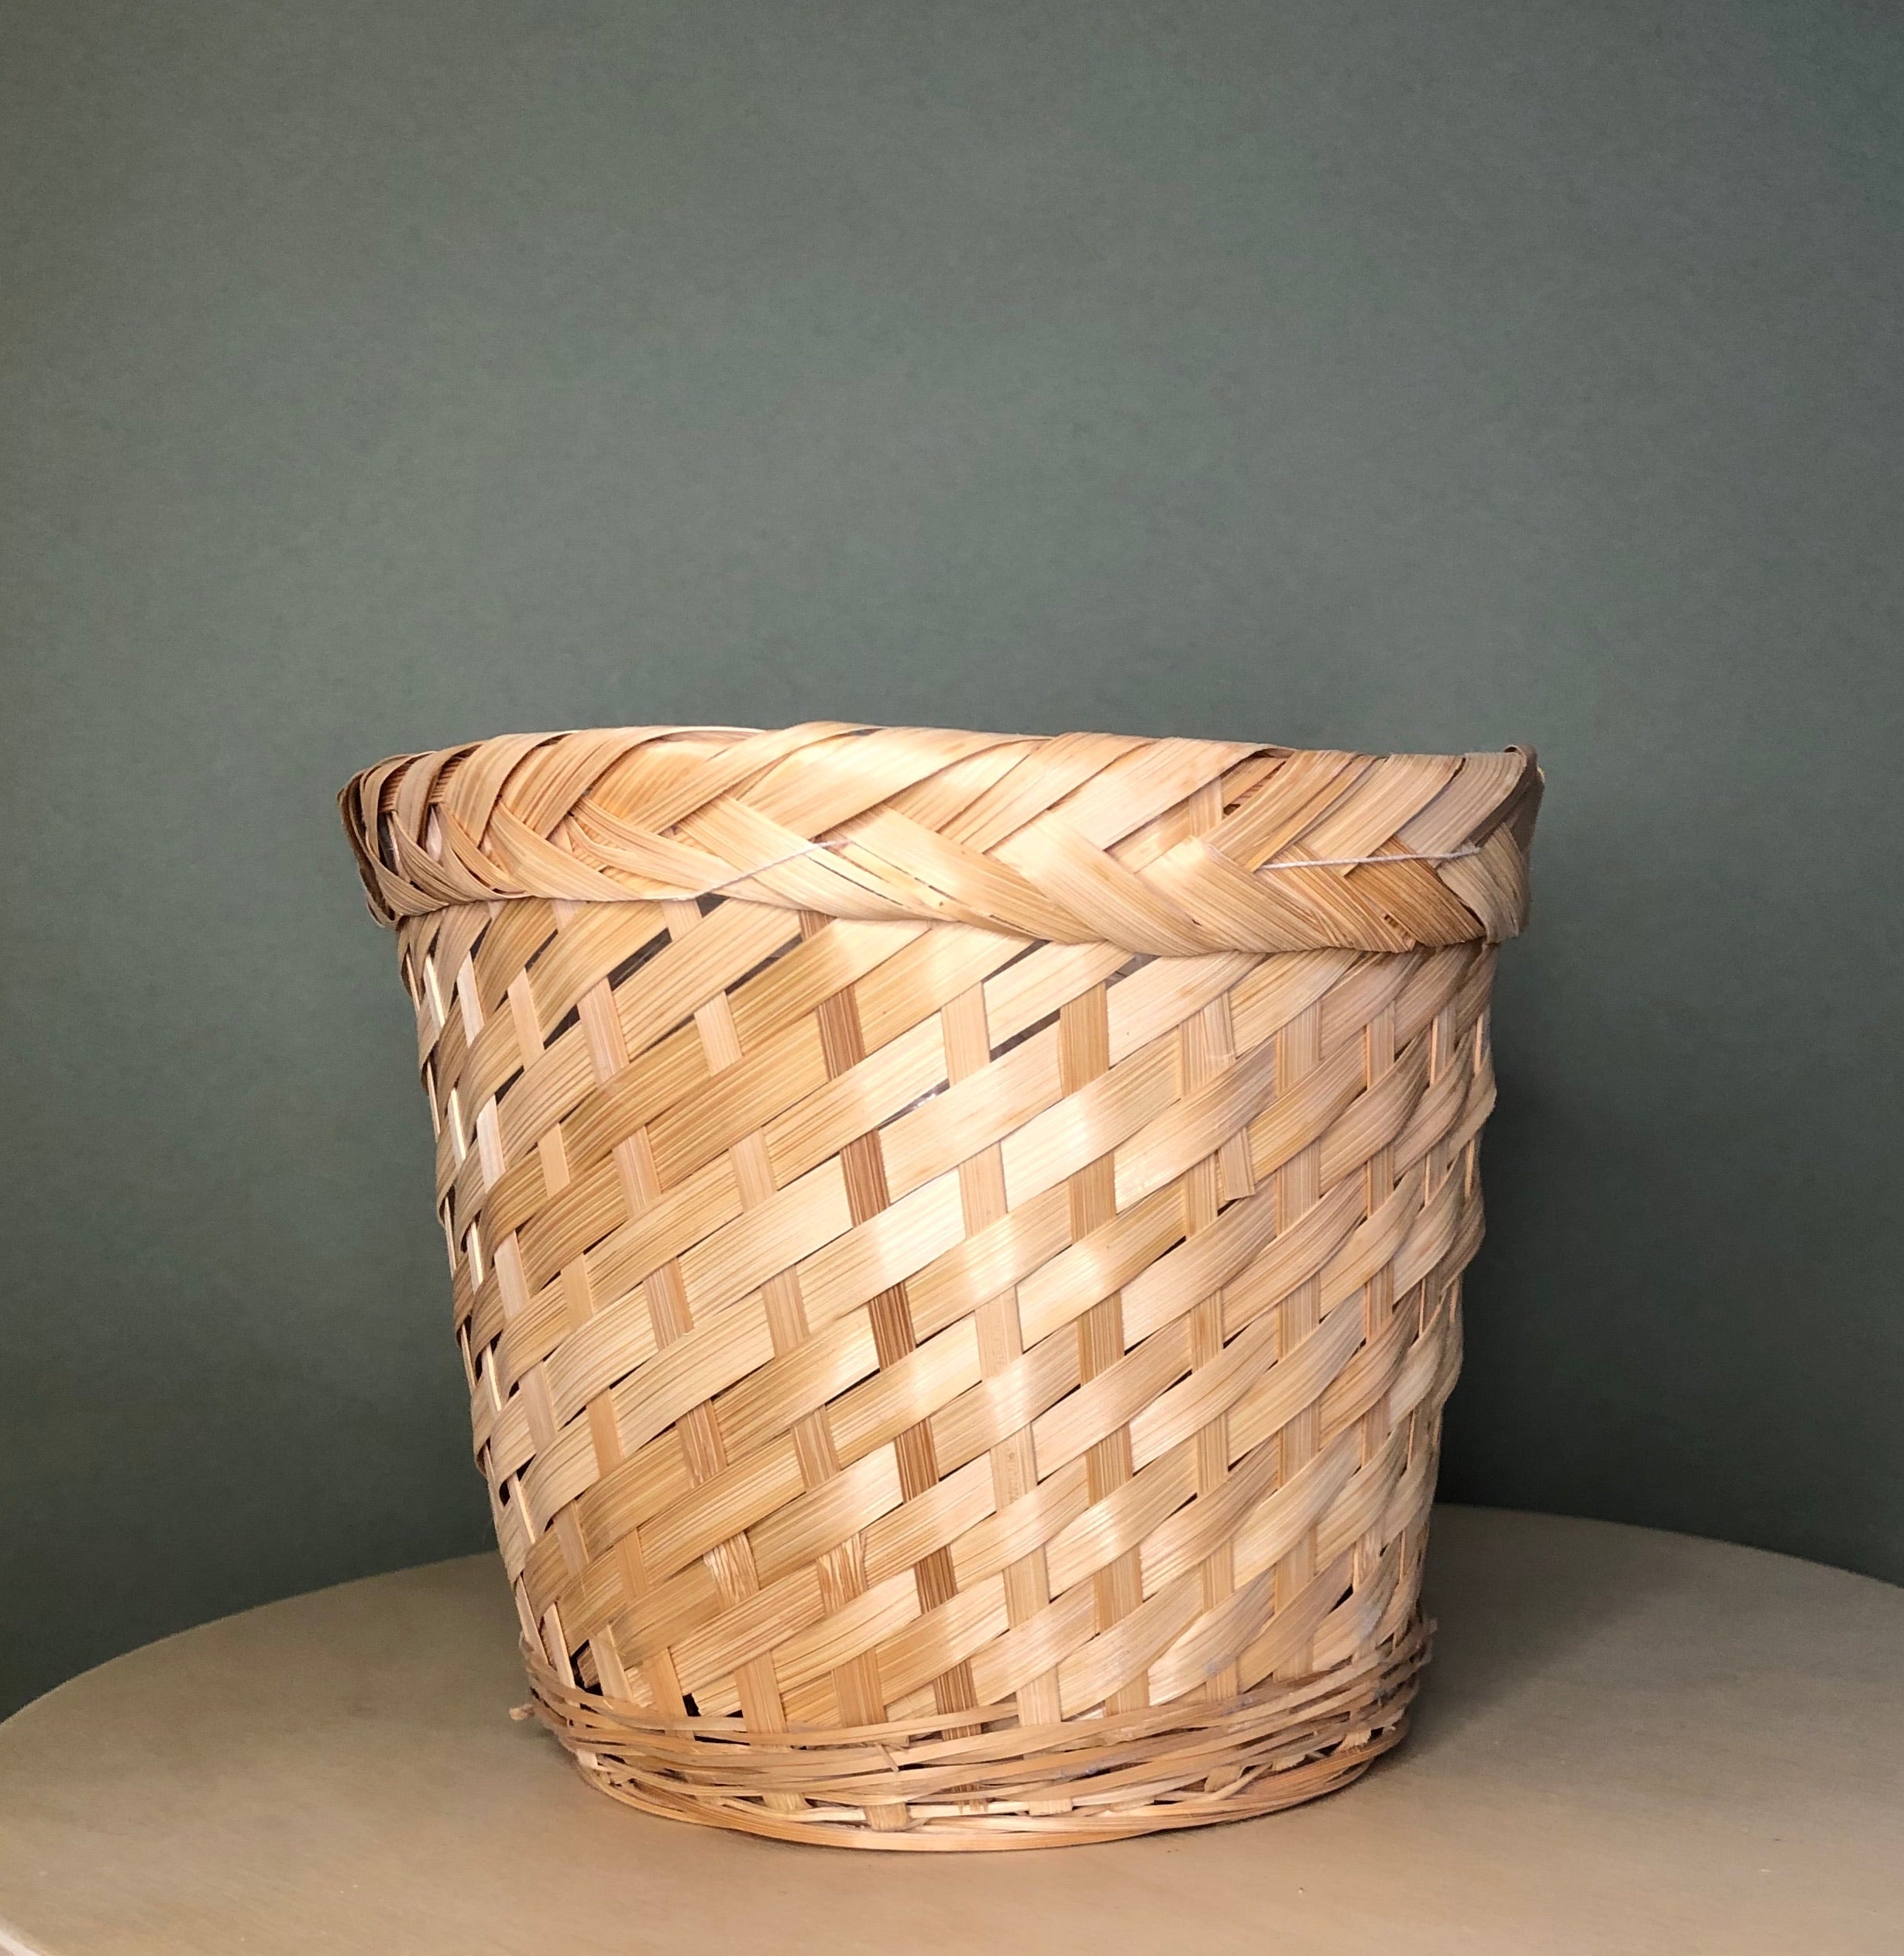 Wicker Planter/Basket